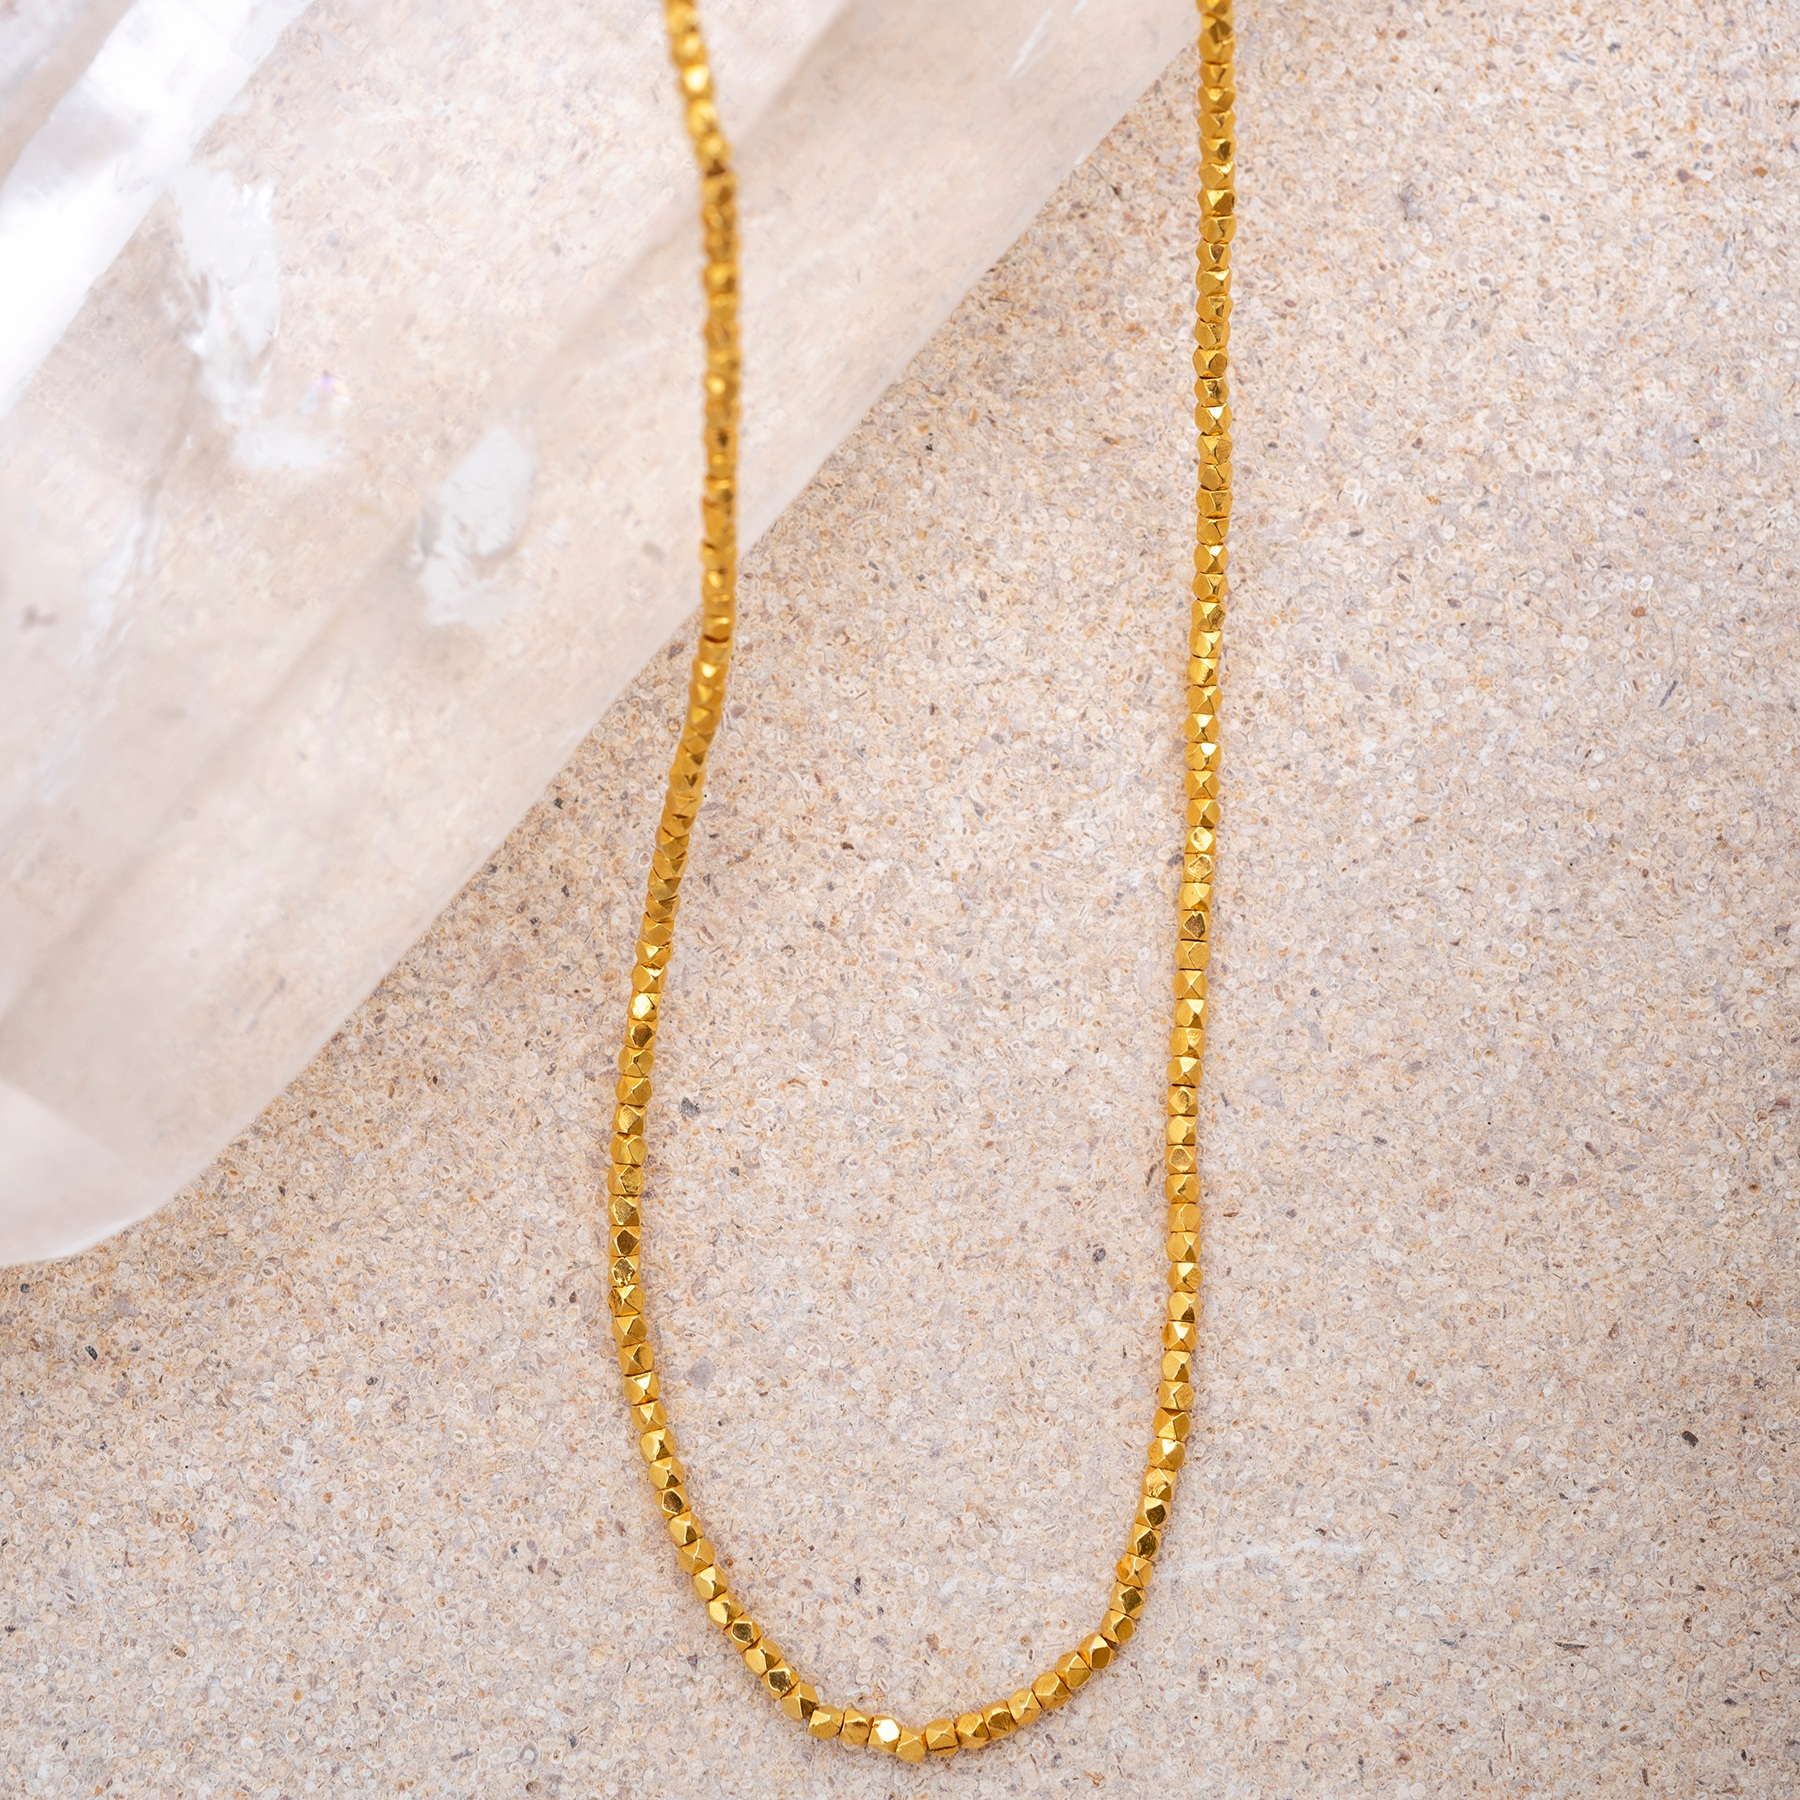 Gold Faceted Beads Necklace. A stunningly individual, 45cm necklace in 18ct gold.